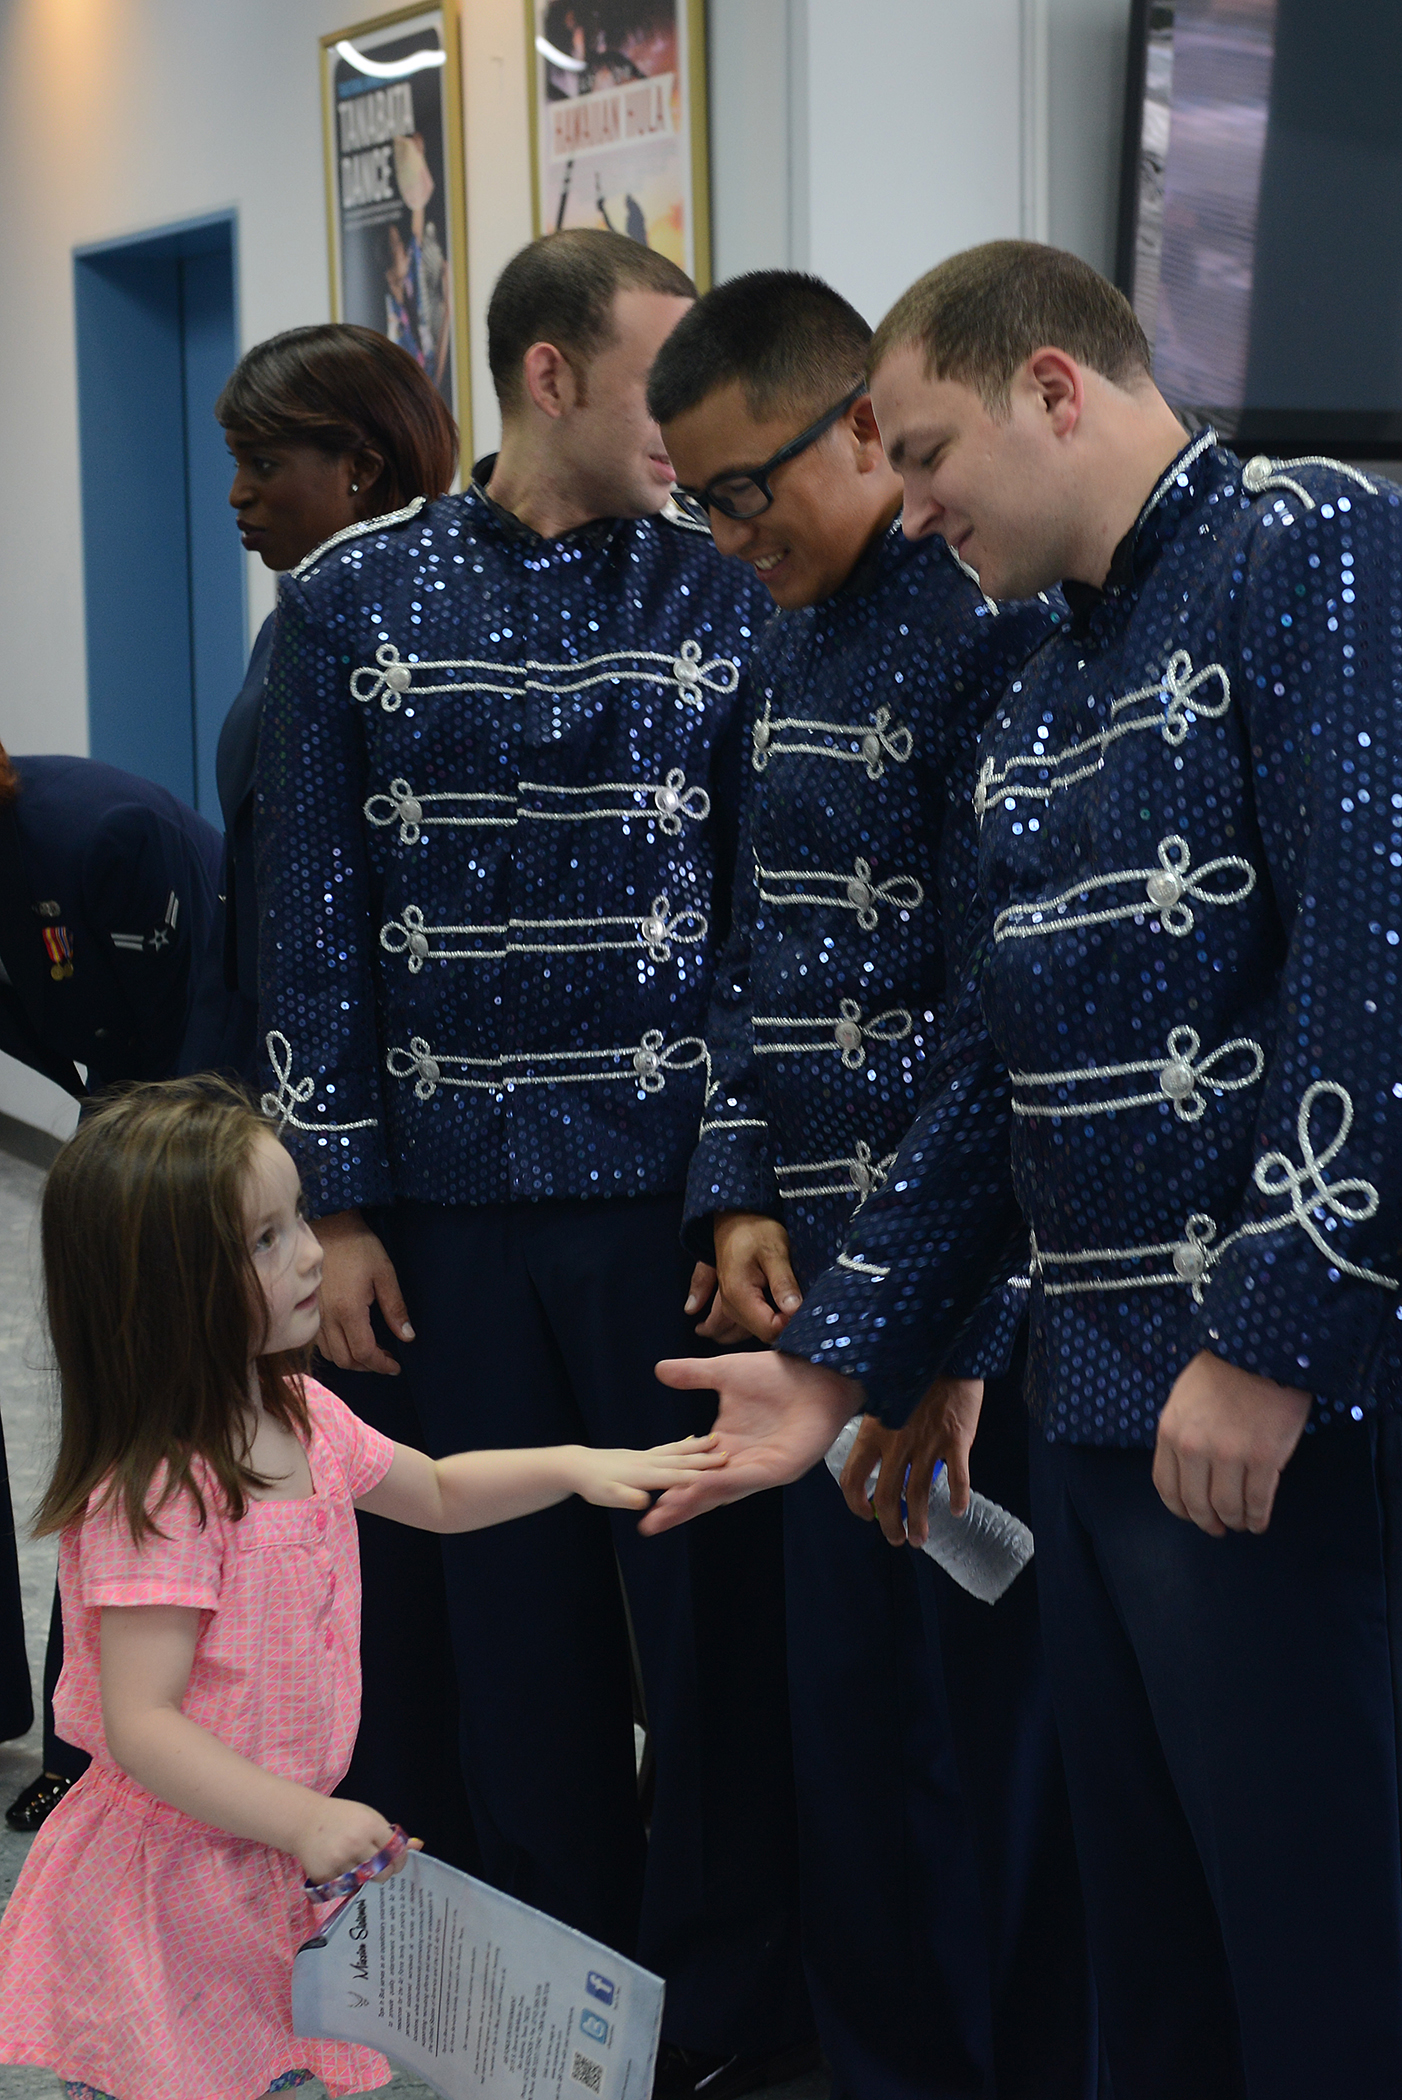 A child high-fives musicians after a Tops in Blue performance at Yokota Air Base, Japan, July 19, 2015. Tops in Blue promotes community relations, support recruiting efforts and serve as ambassadors for the U.S. and the Air Force when performing overseas. (U.S. Air Force photo by Airman 1st Class David C. Danford/Released)